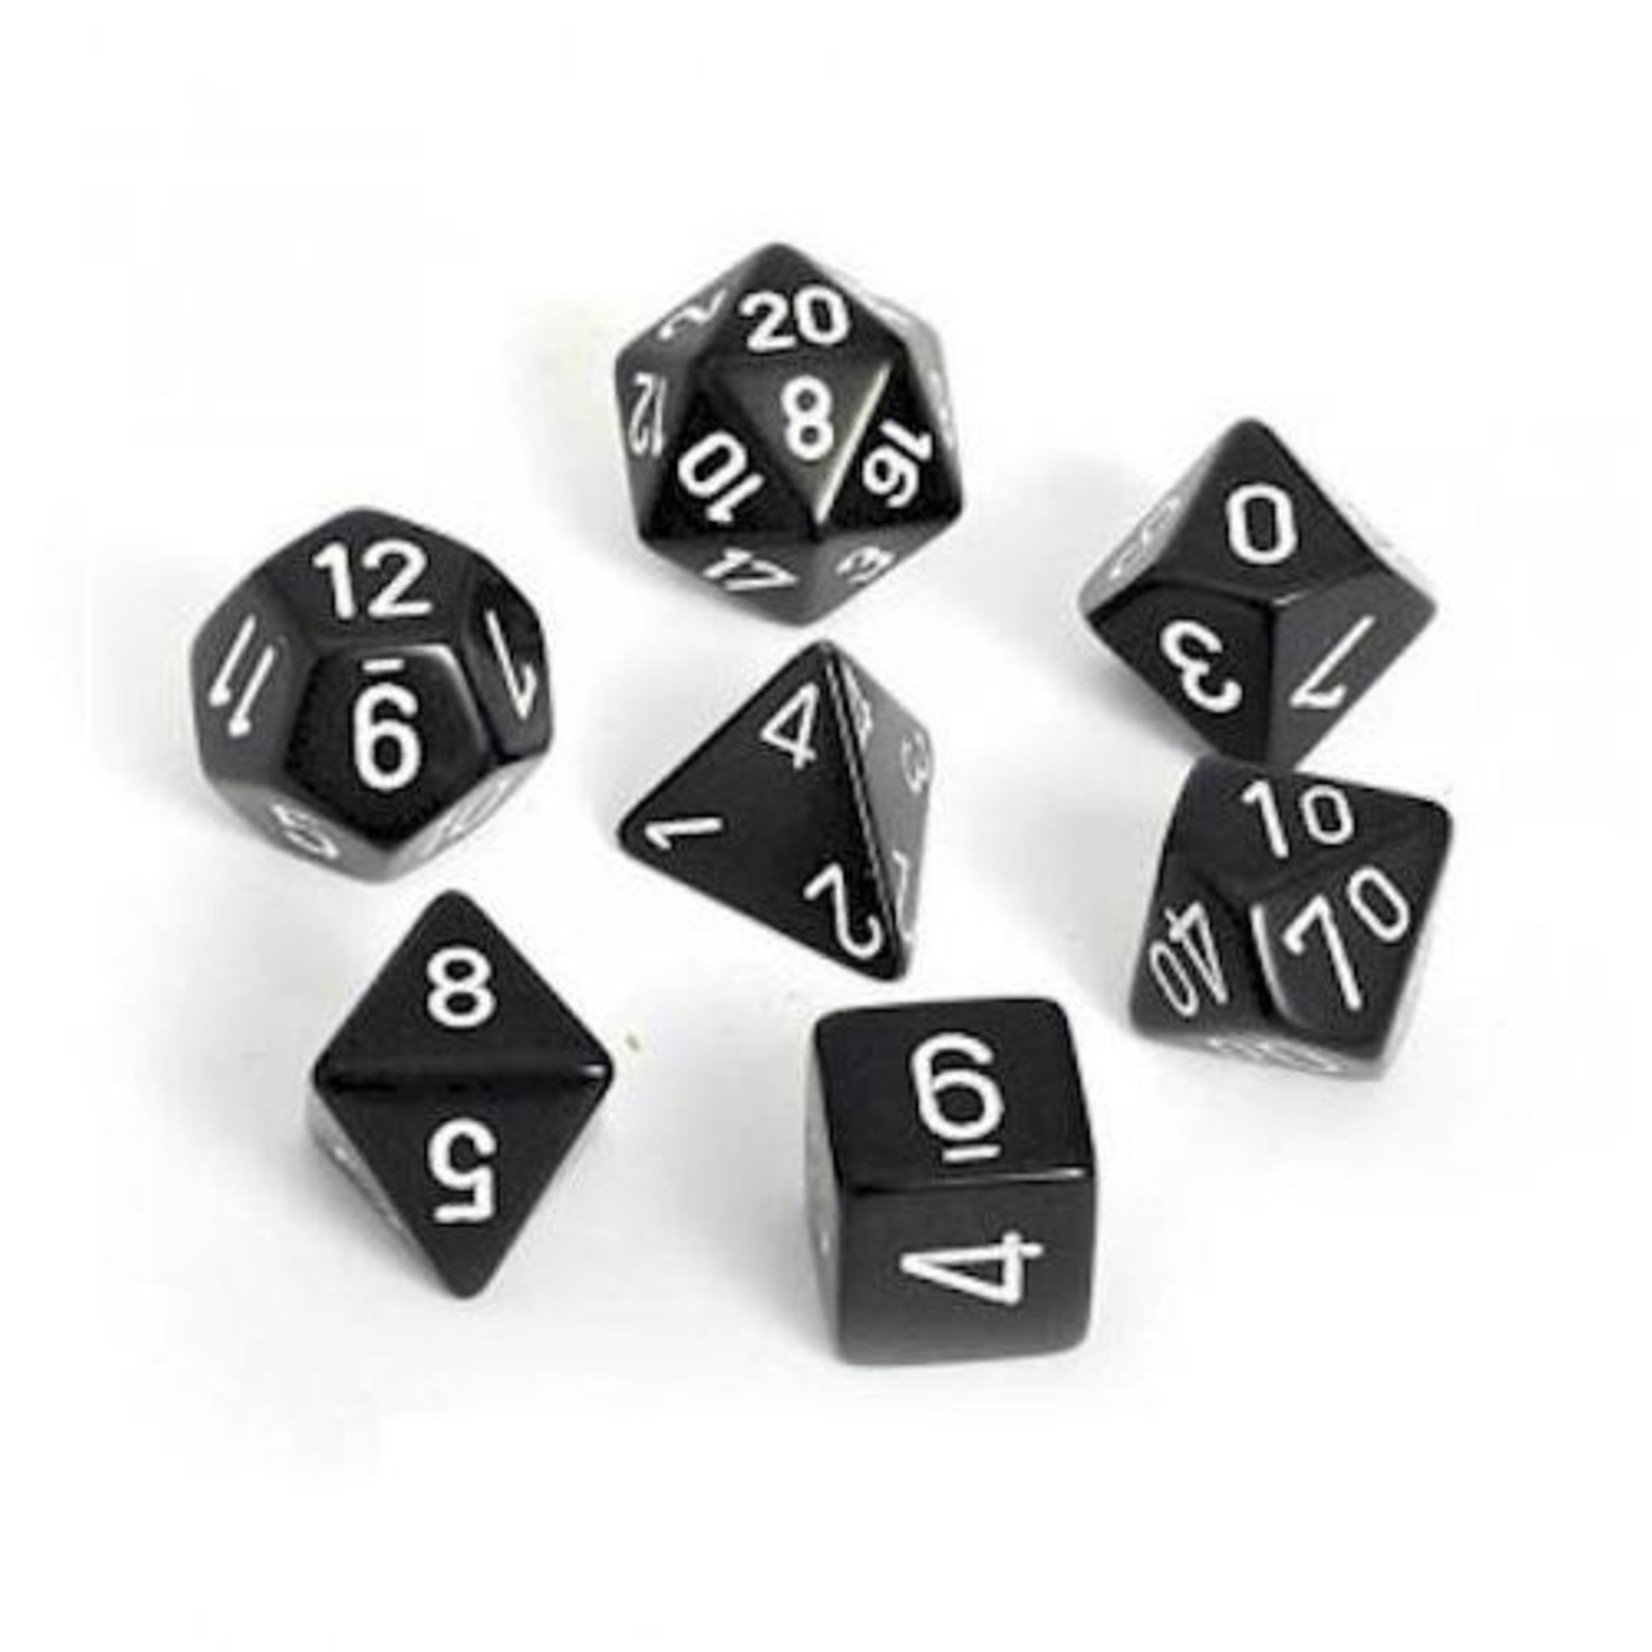 Chessex 25408 Opaque Polyhedral Set Black with White